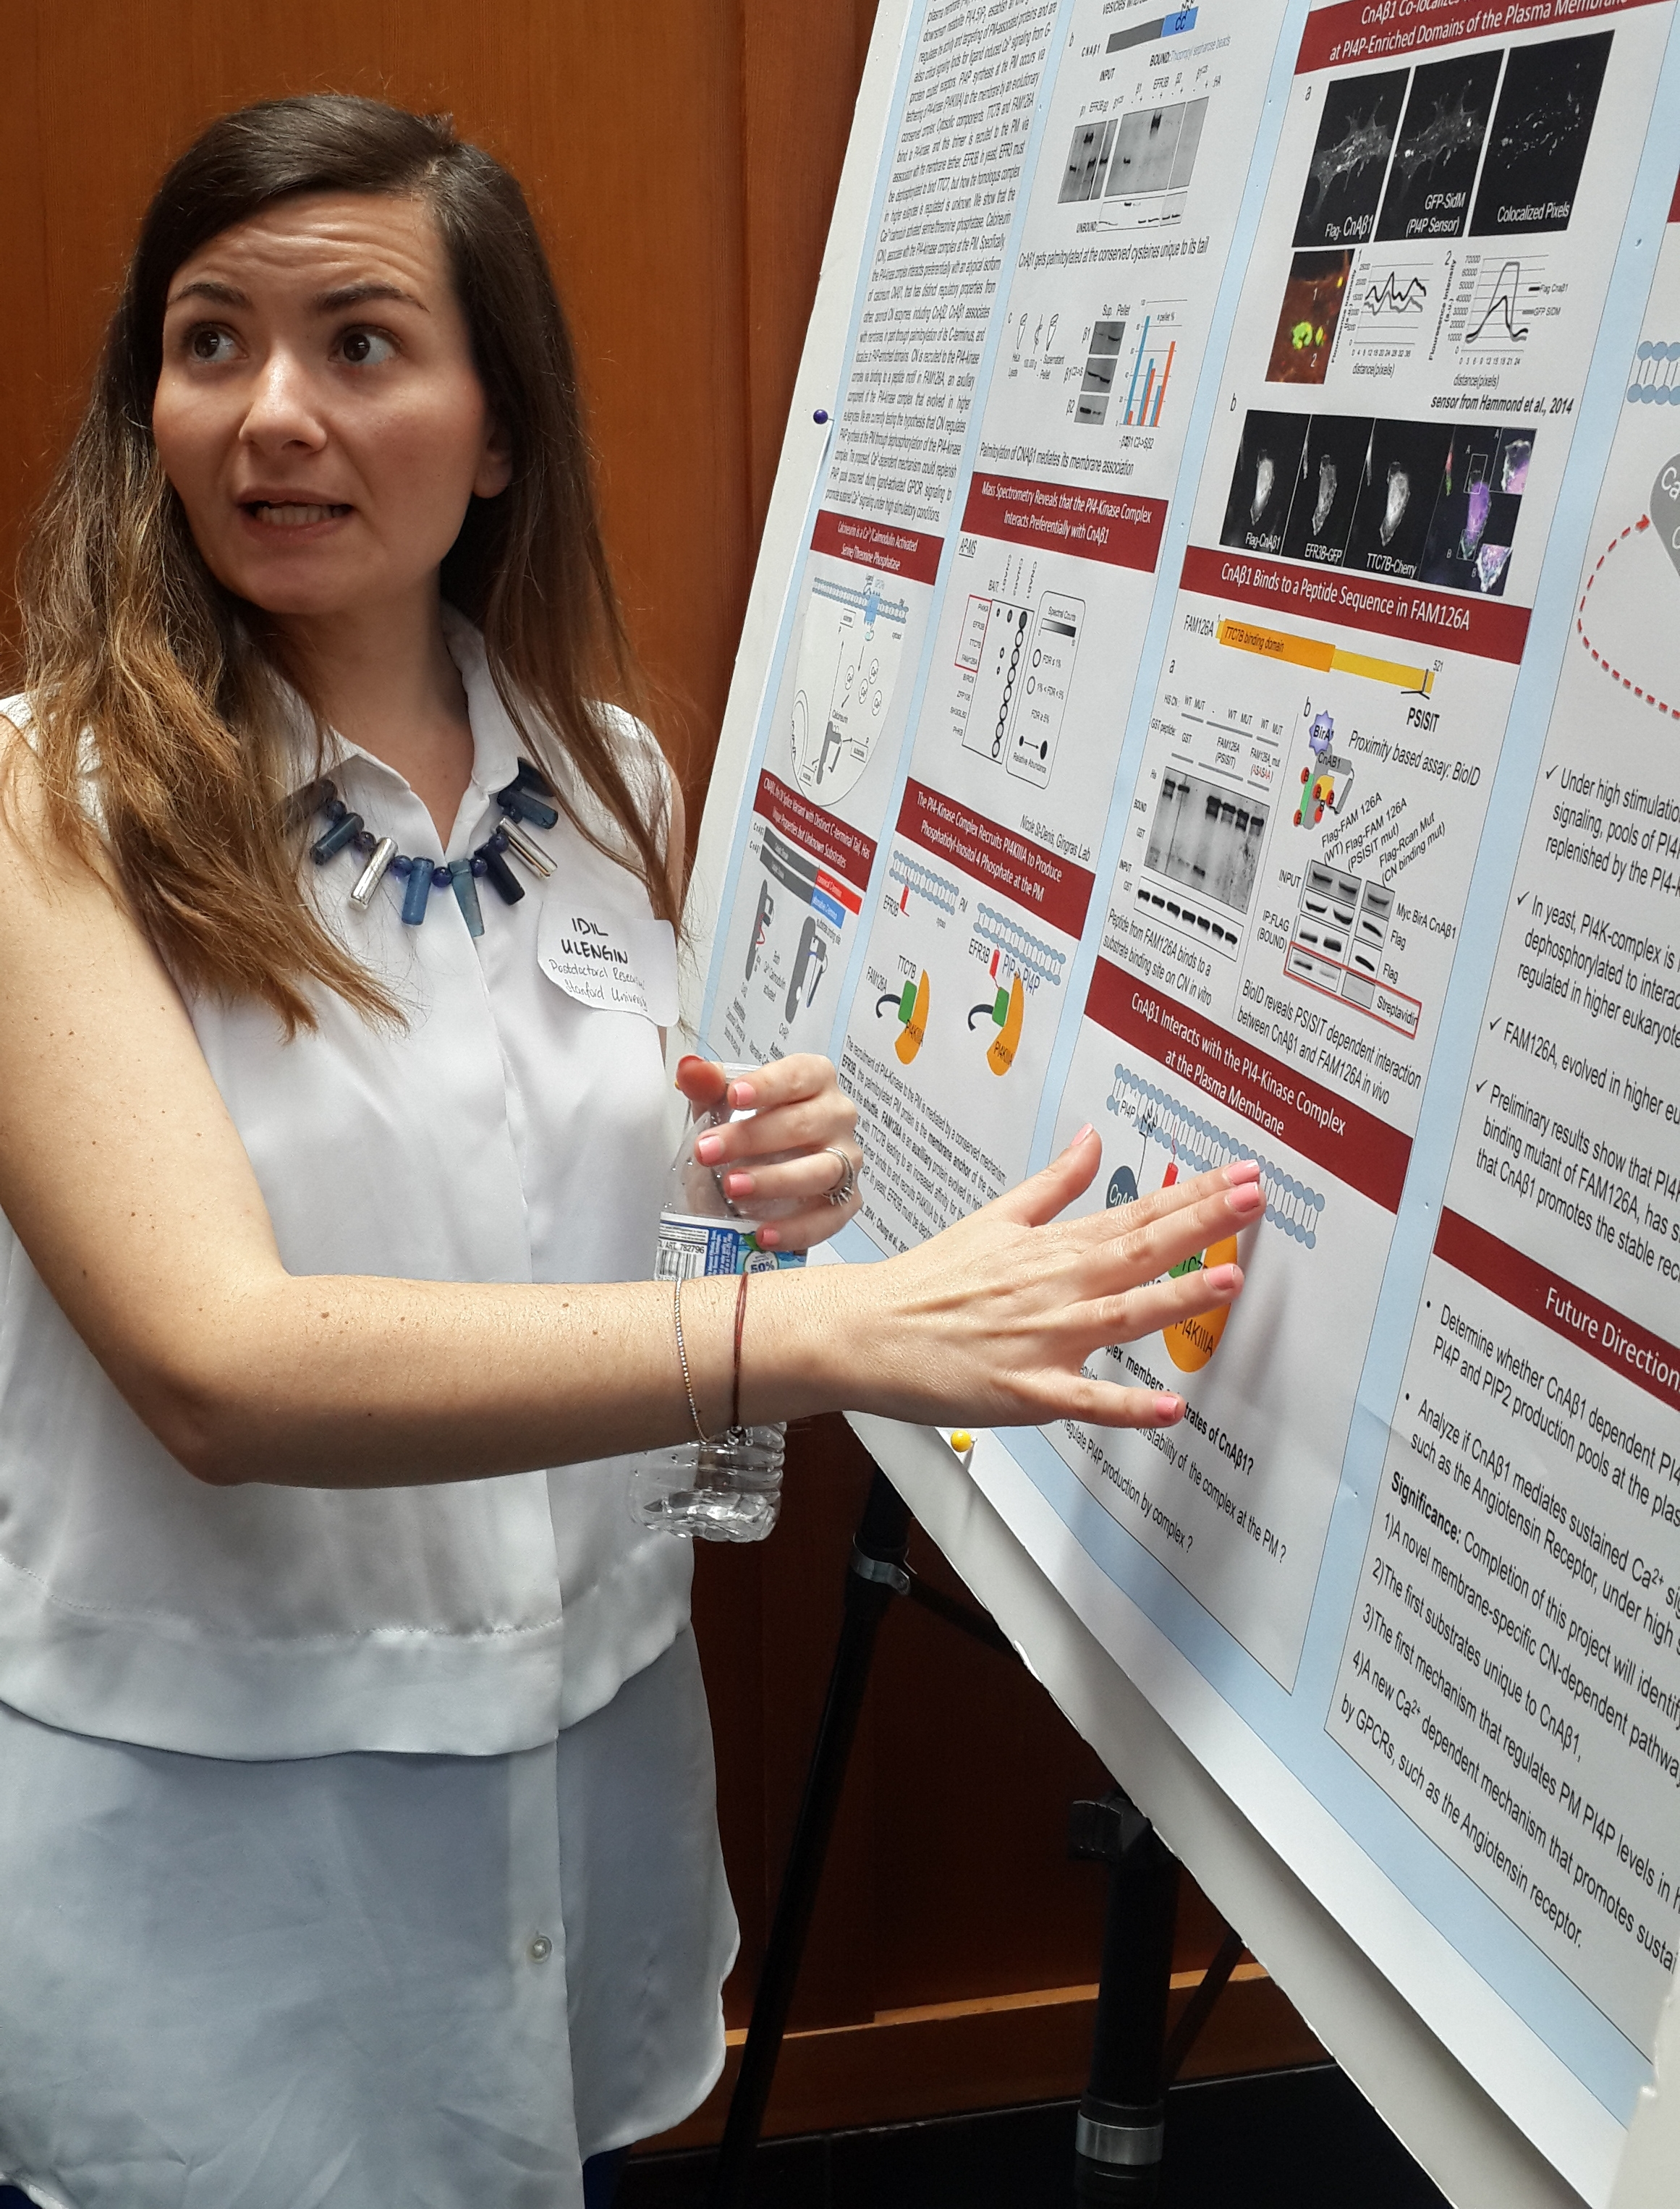 - Idil presents a poster at ASCB's Bay Area Meeting on Organelle Biology (BAMOB).